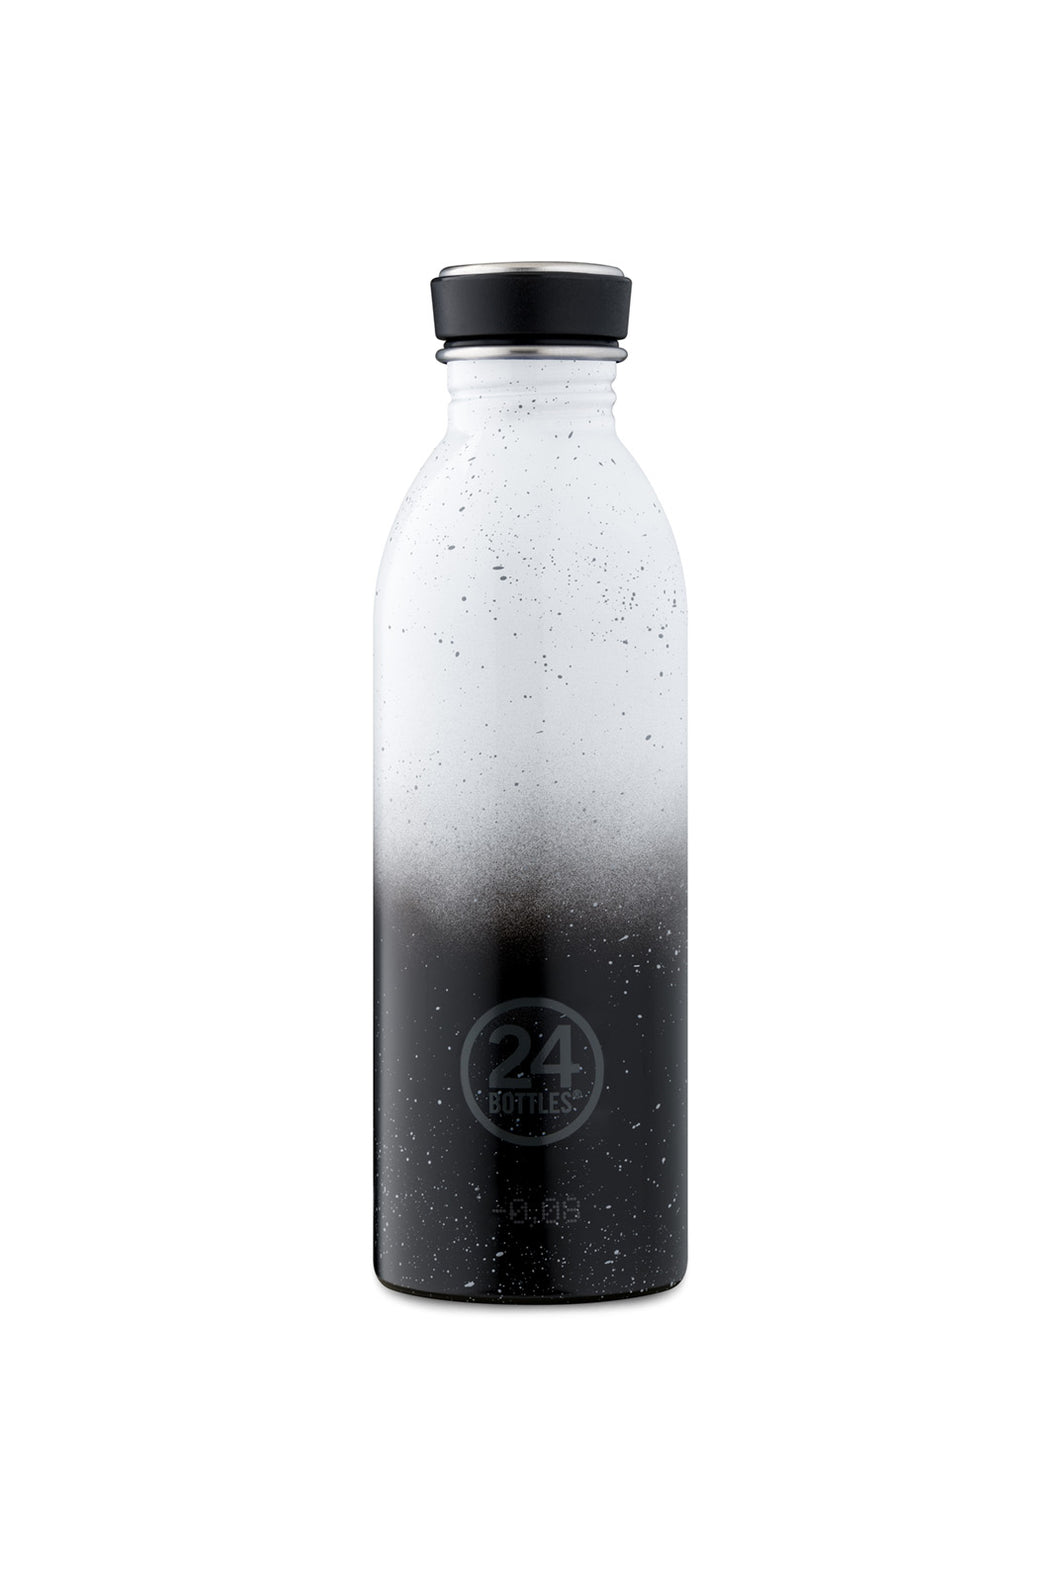 24Bottles - Basic Collection - Urban Bottle - Stainless Steel Drink Bottle - 500ml - Eclipse